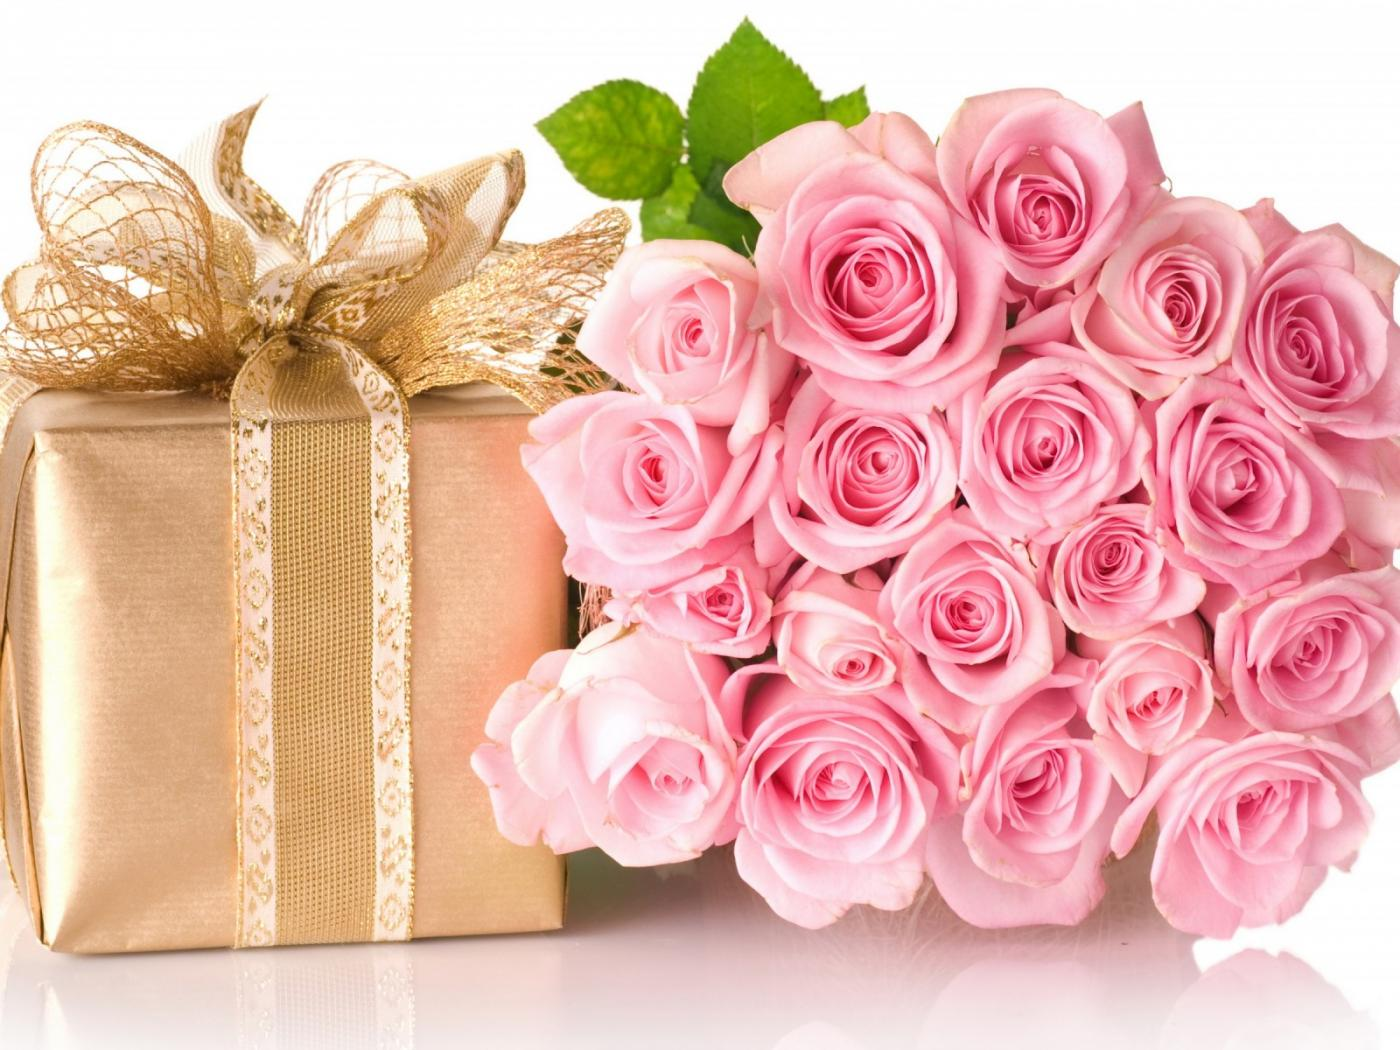 Happy birthday images with rose flowers and gift box hd wallpapers available downloads izmirmasajfo